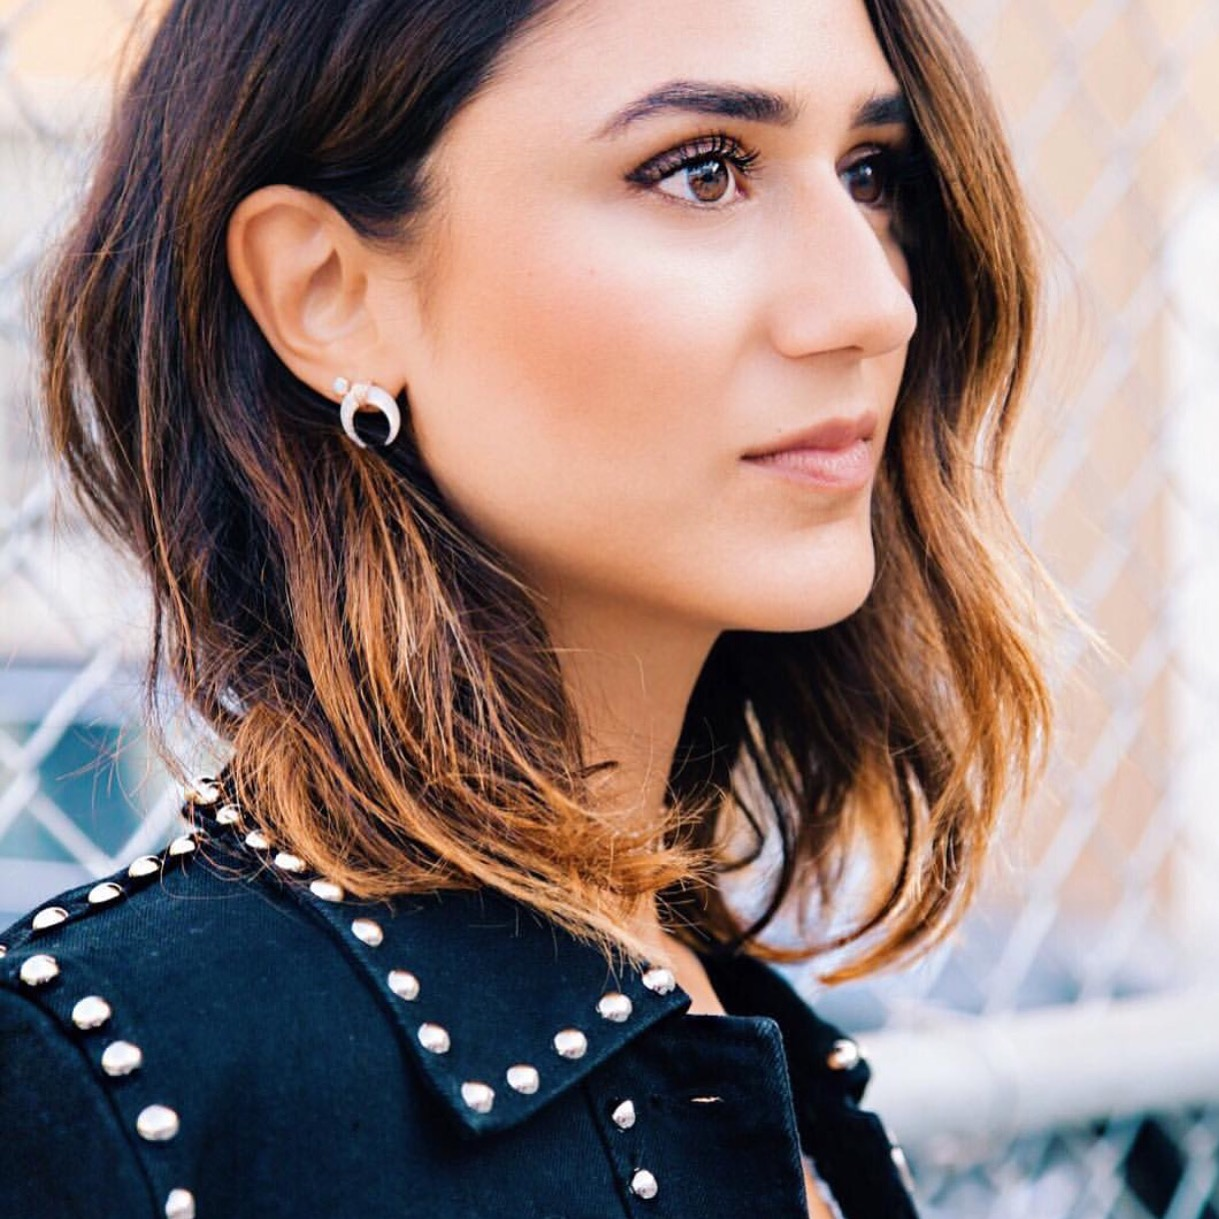 The Jacquie Aiche Earrings That Every Blogger Is Wearing Right Now